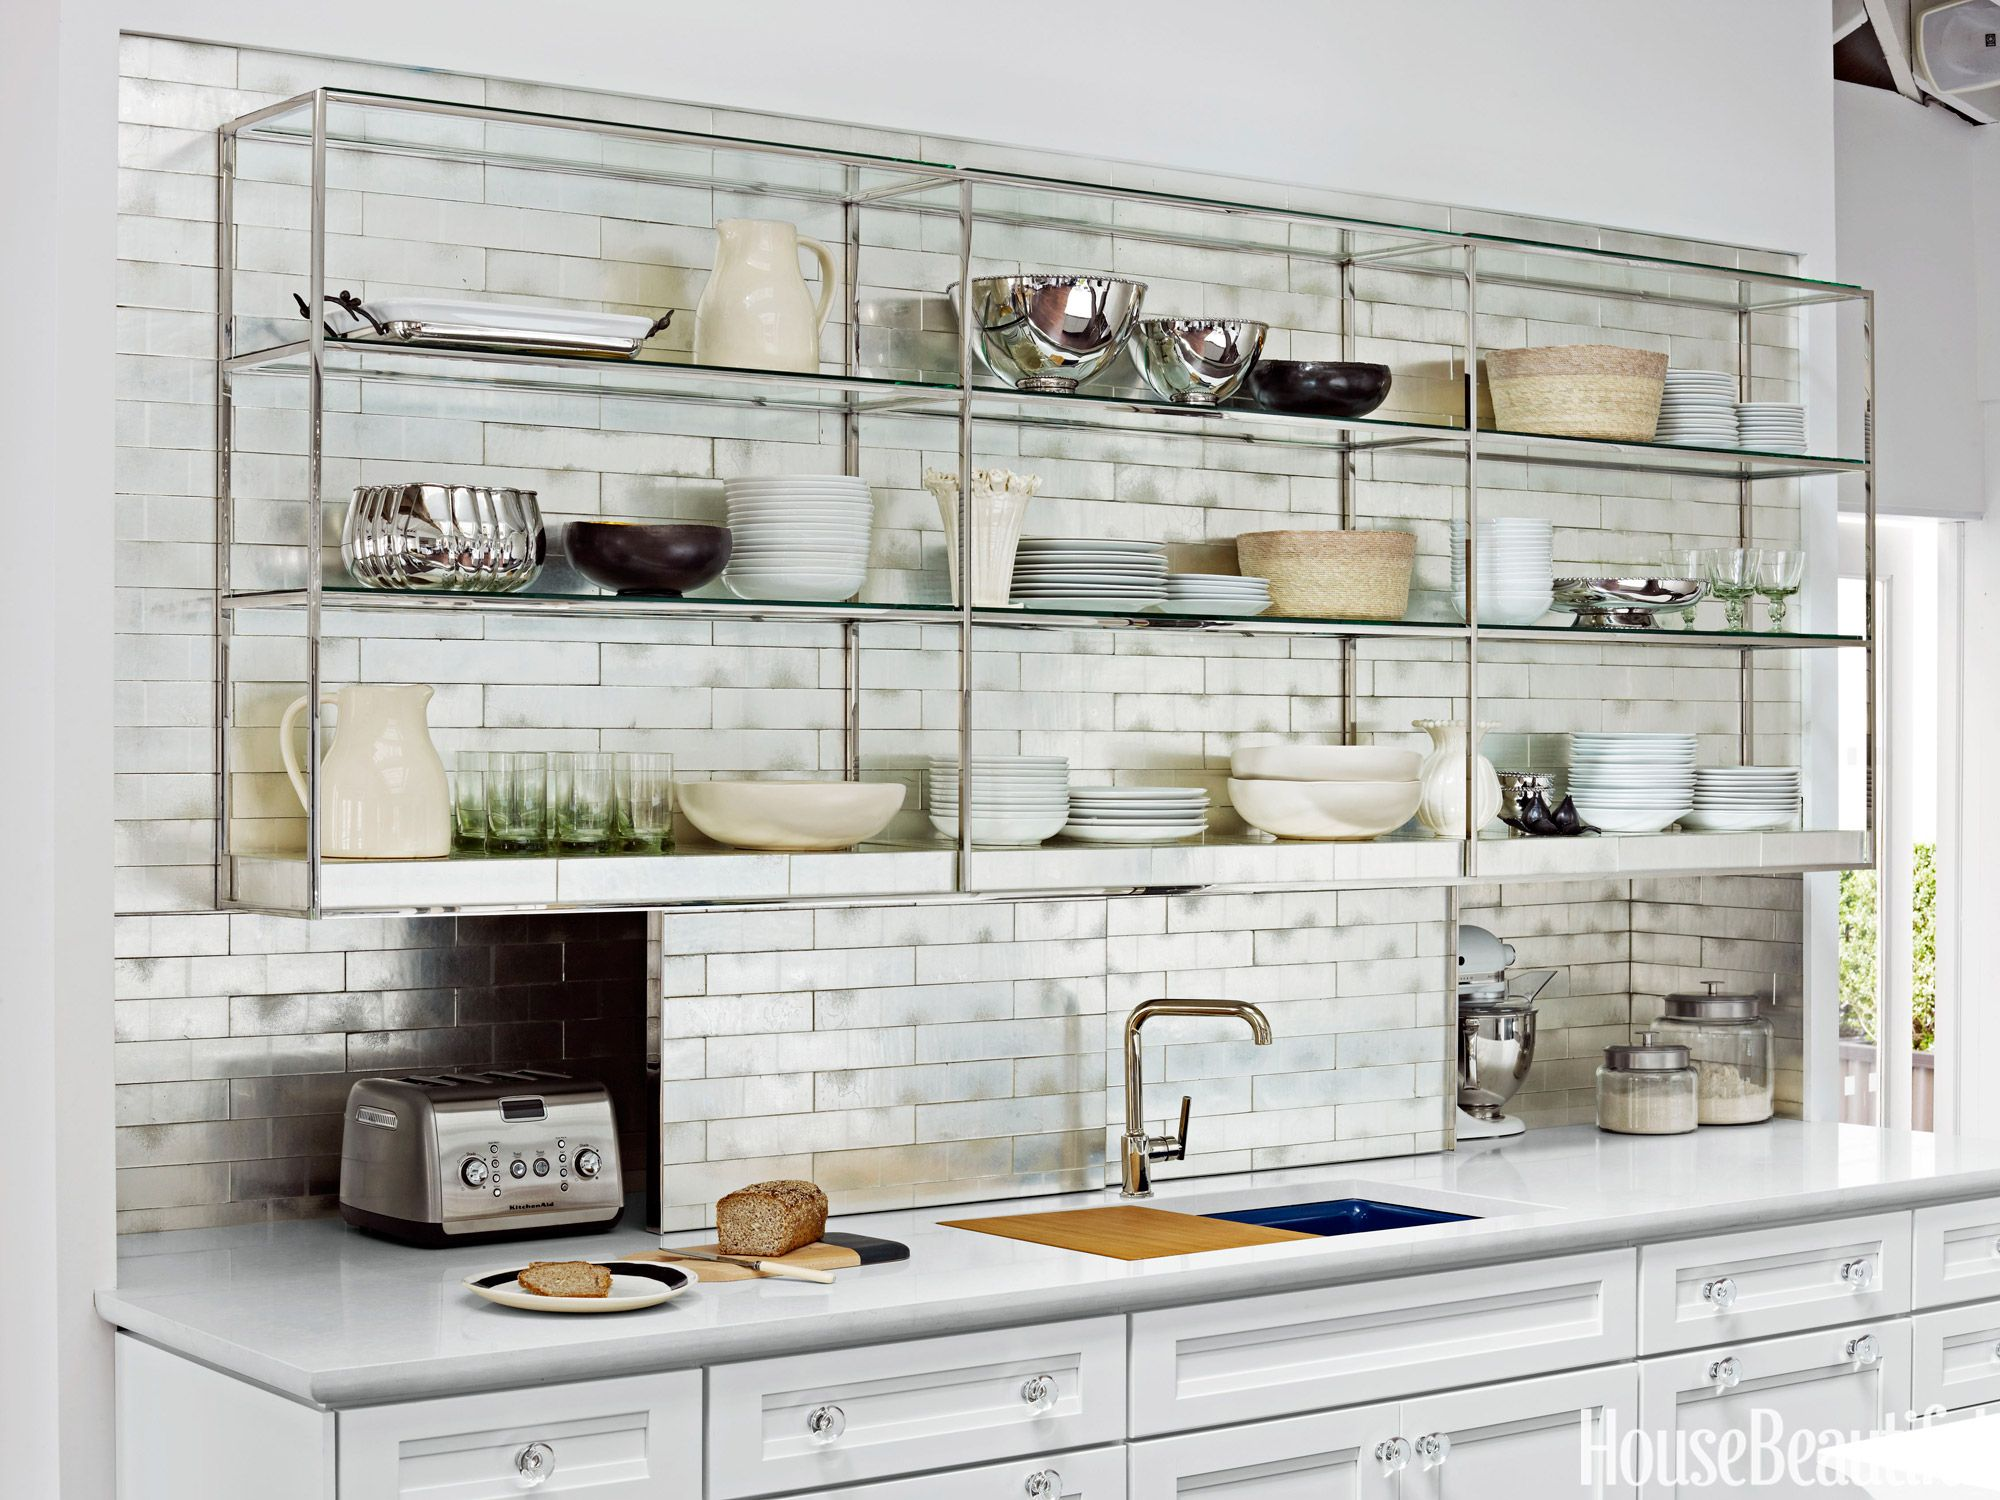 Ask a Designer: The Pros and Cons of Open Shelving